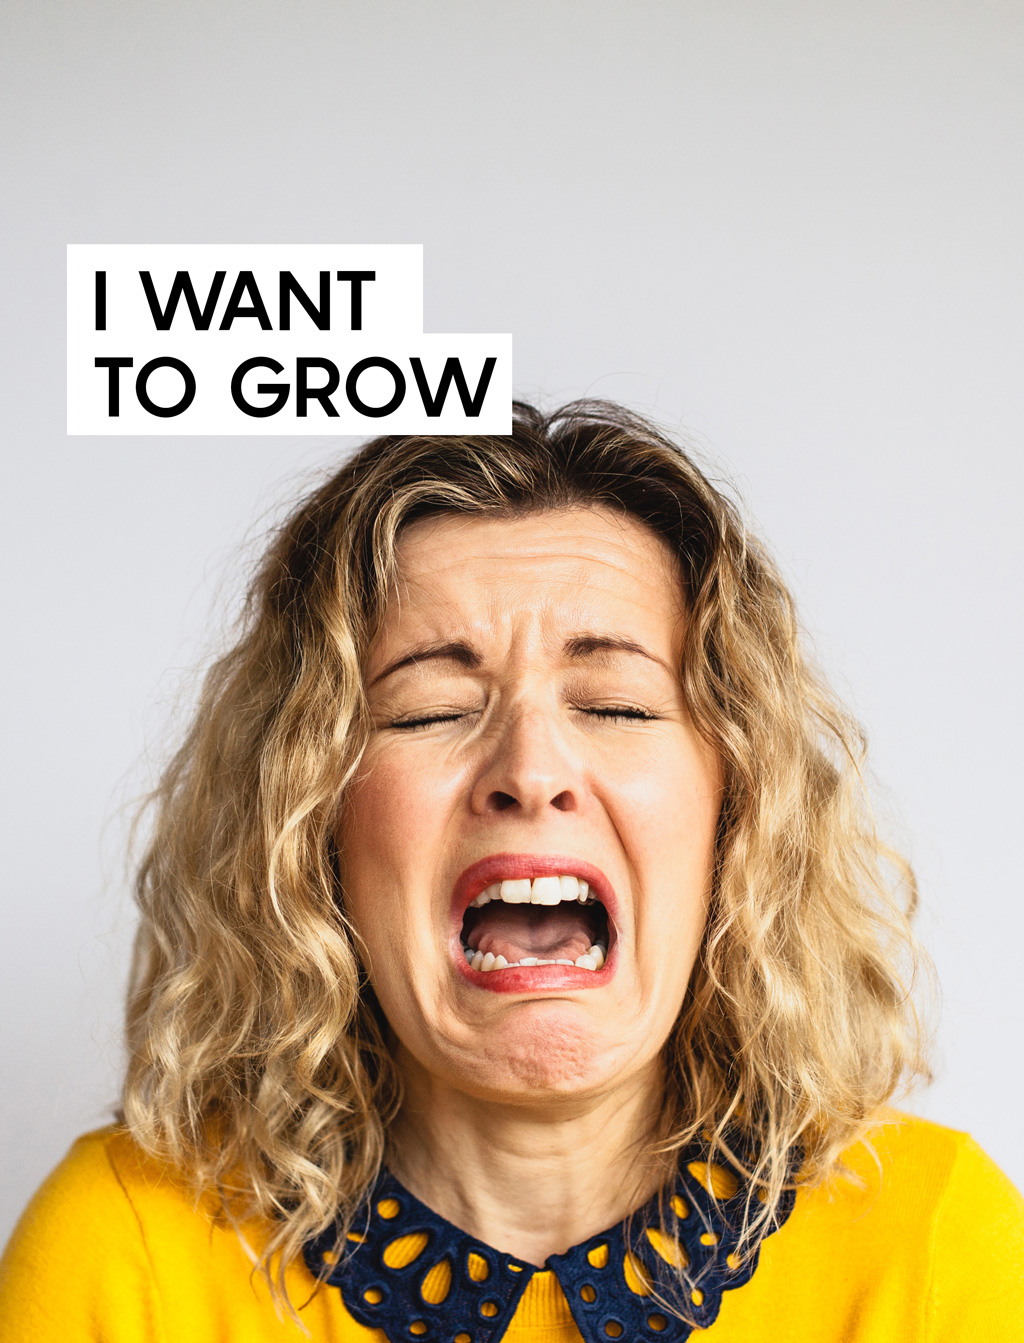 woman crying because of lack of growth in career